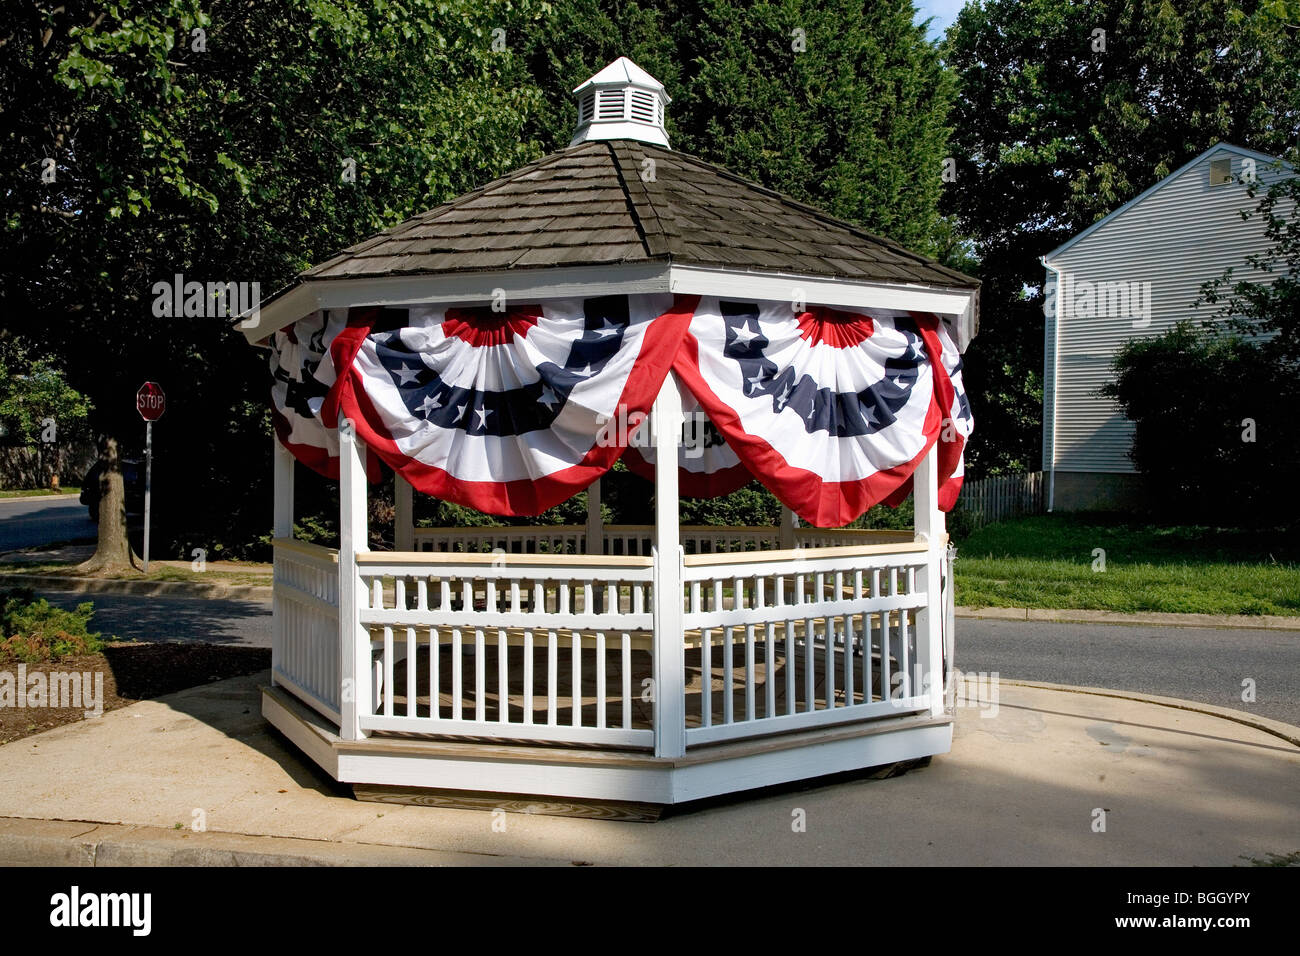 Gazebo draped in American flags for July 4, near Annapolis, Maryland - Stock Image